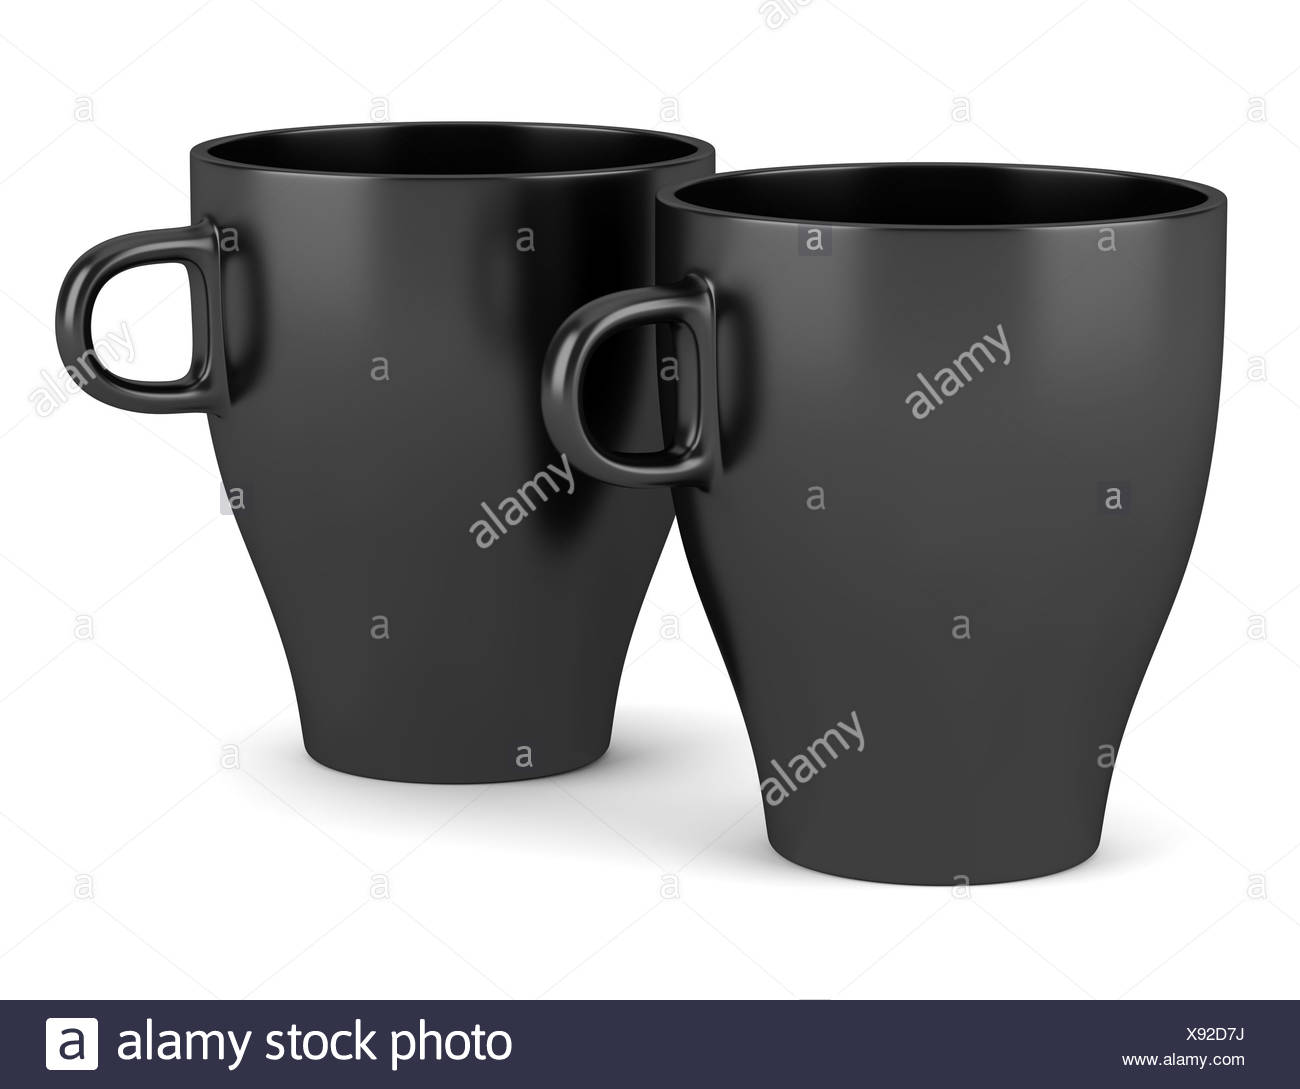 two black ceramic cups isolated on white - Stock Image